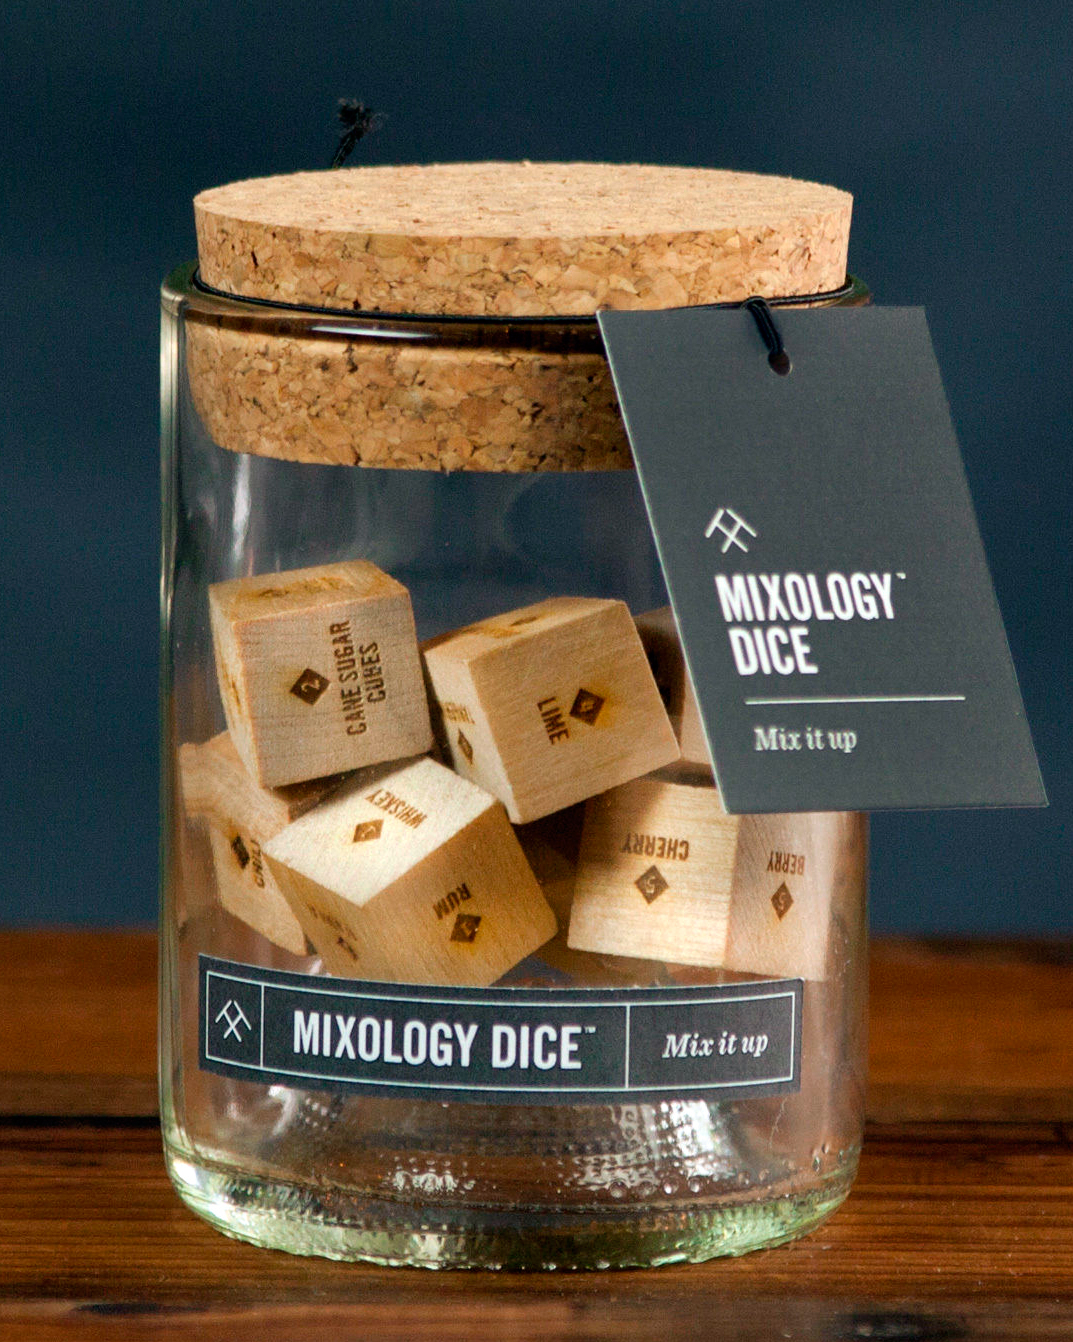 valentines-day-gift-guide-him-mixology-dice-0115.jpg